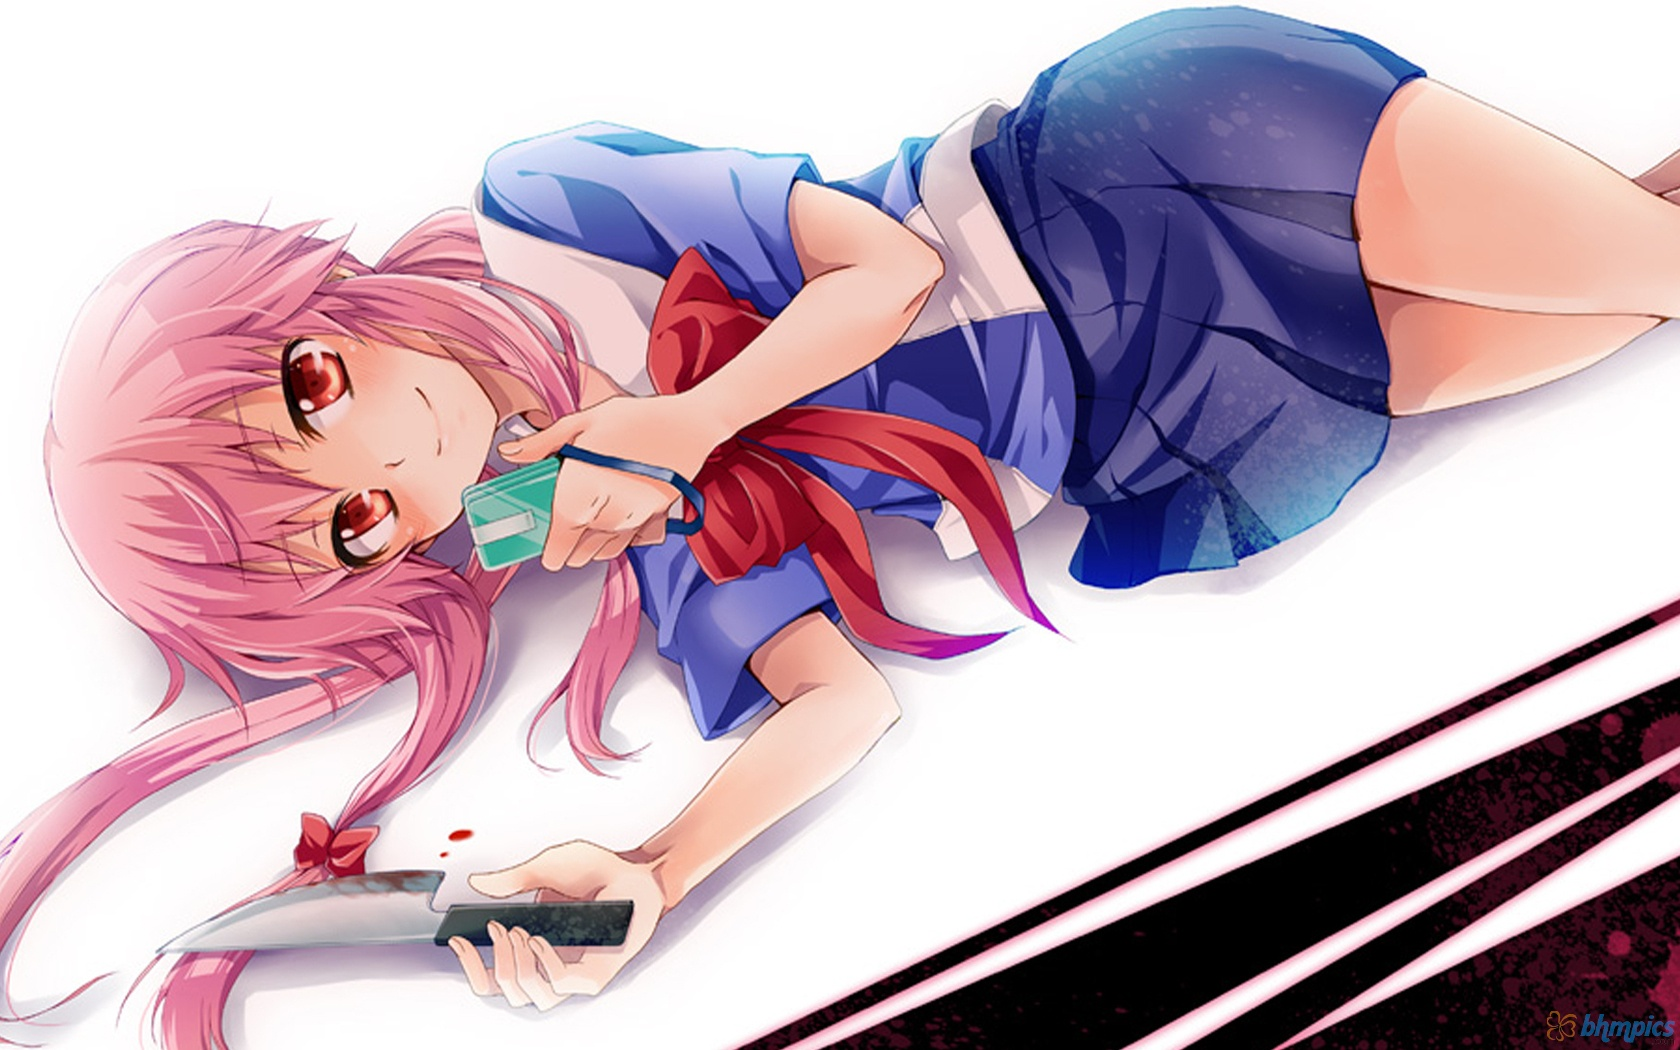 Gasai Yuno Wallpaper: Yuno Gasai Images Yuno♥ HD Wallpaper And Background Photos